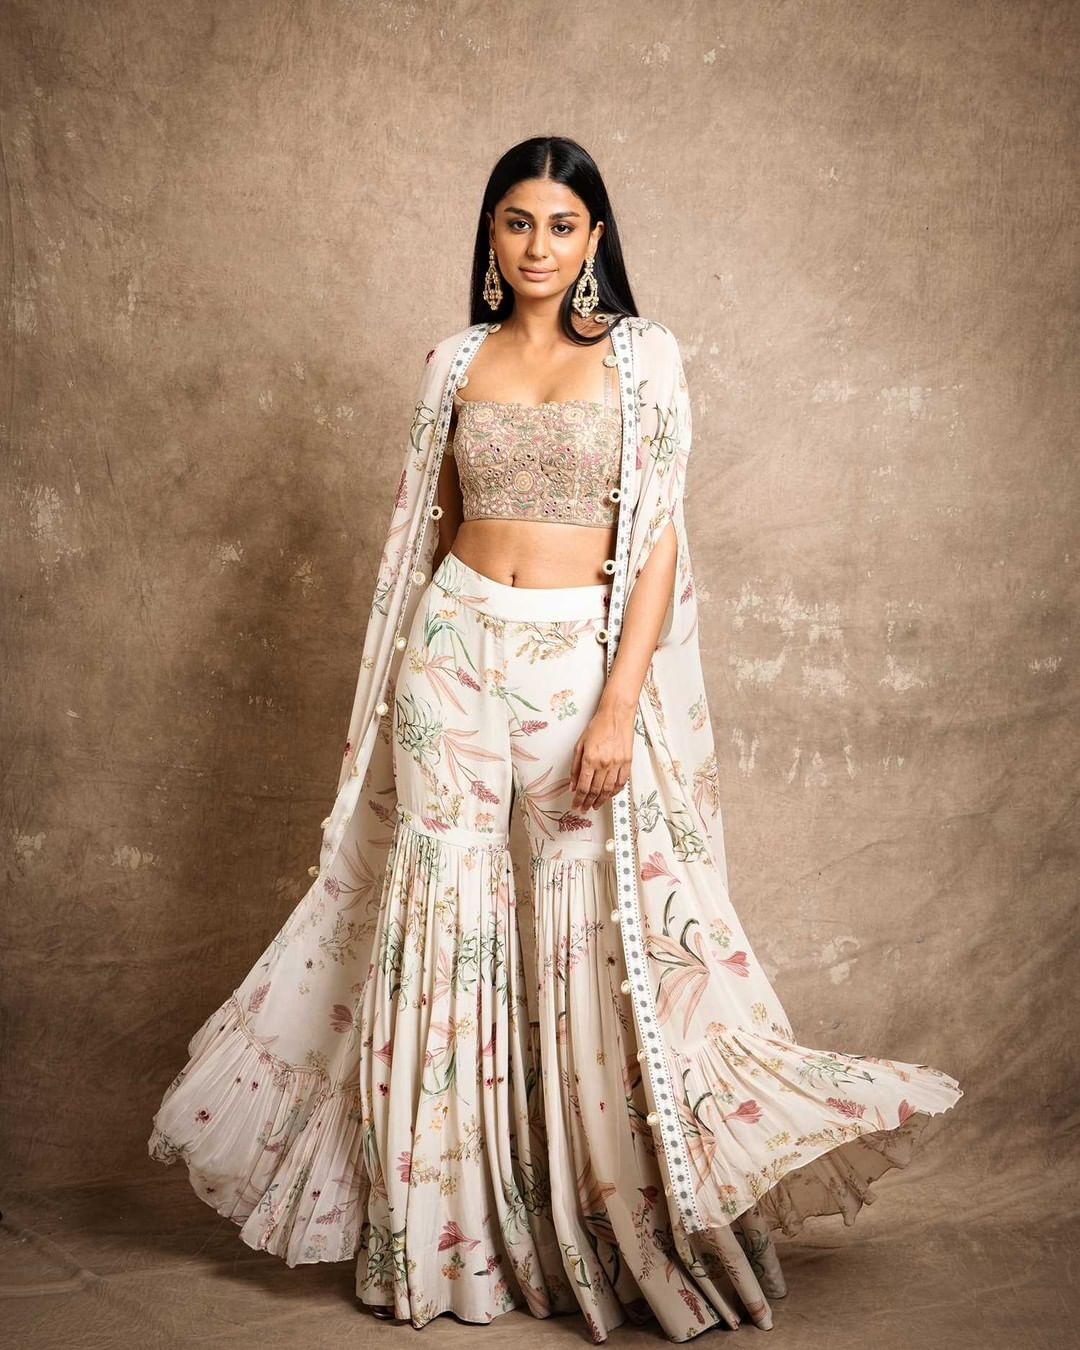 In a festive mood for floral dressing! Presenting Sand floral print sharara set with mirror detailing.   For further enquiries please connect with  team on +91 7506633202 via call or WhatsApp. 2021-07-28